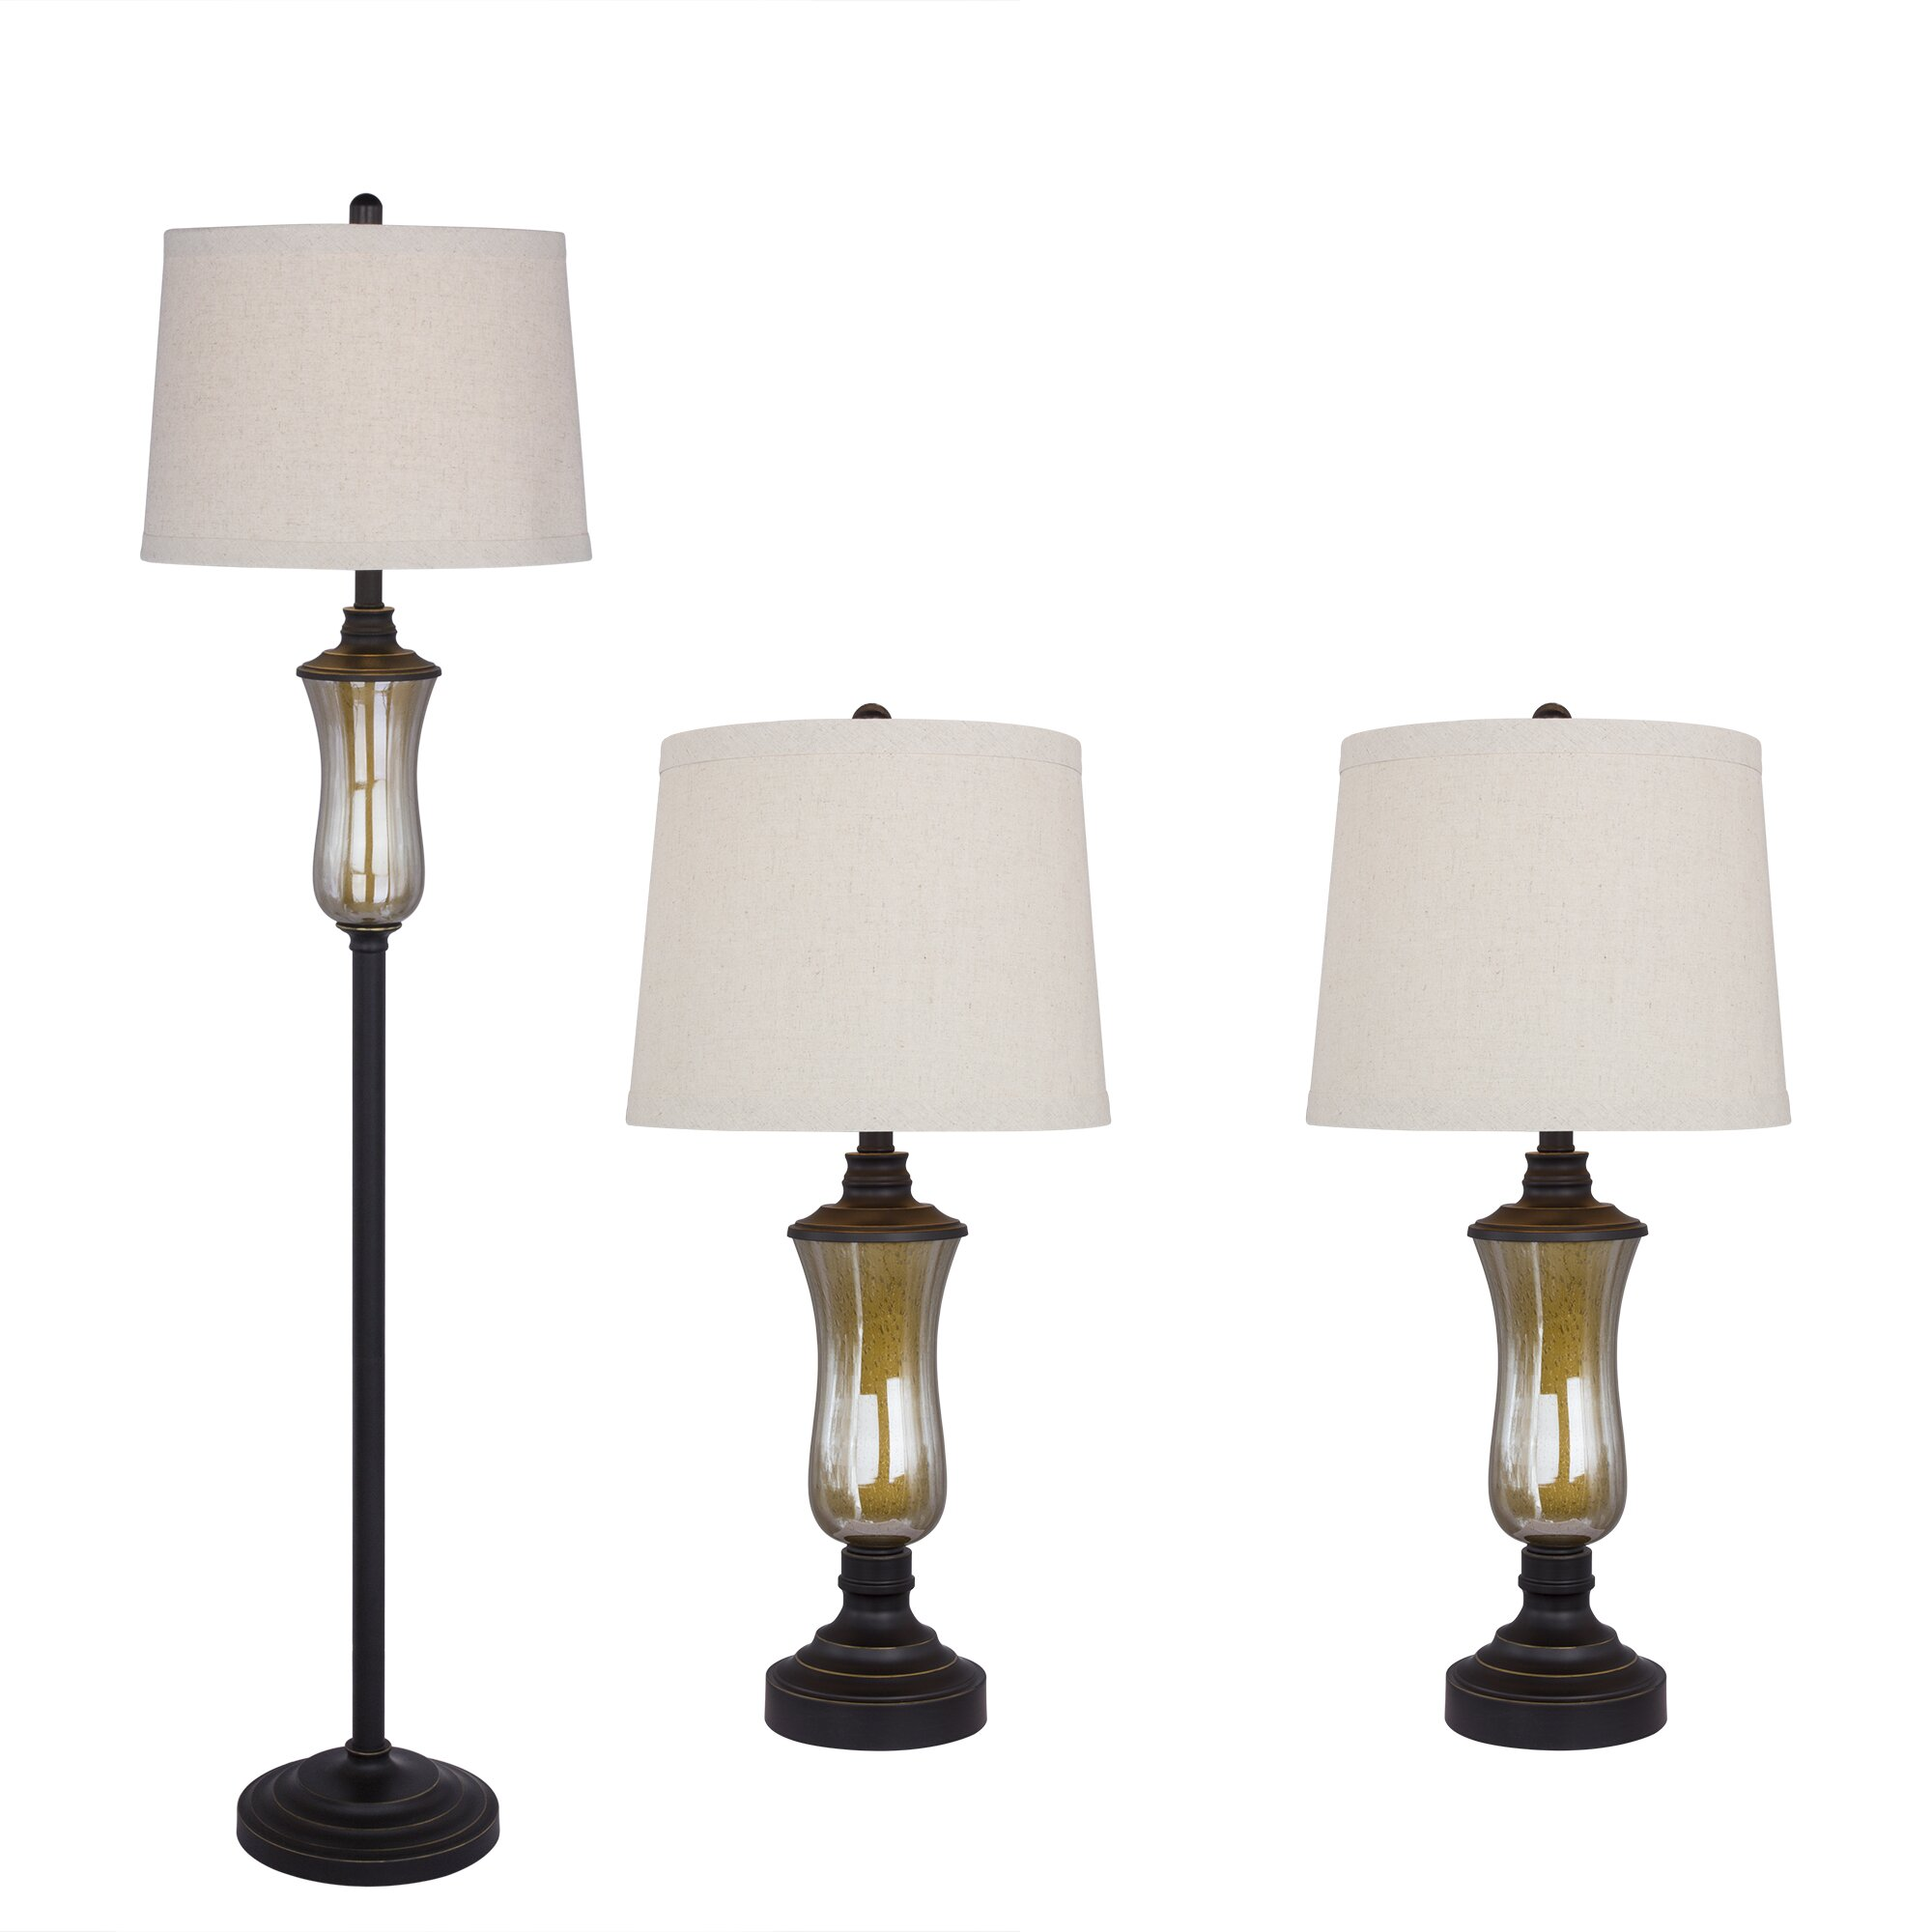 Fangio Lighting 3 Piece Seeded Glass And Metal Table/Floor Lamp Set